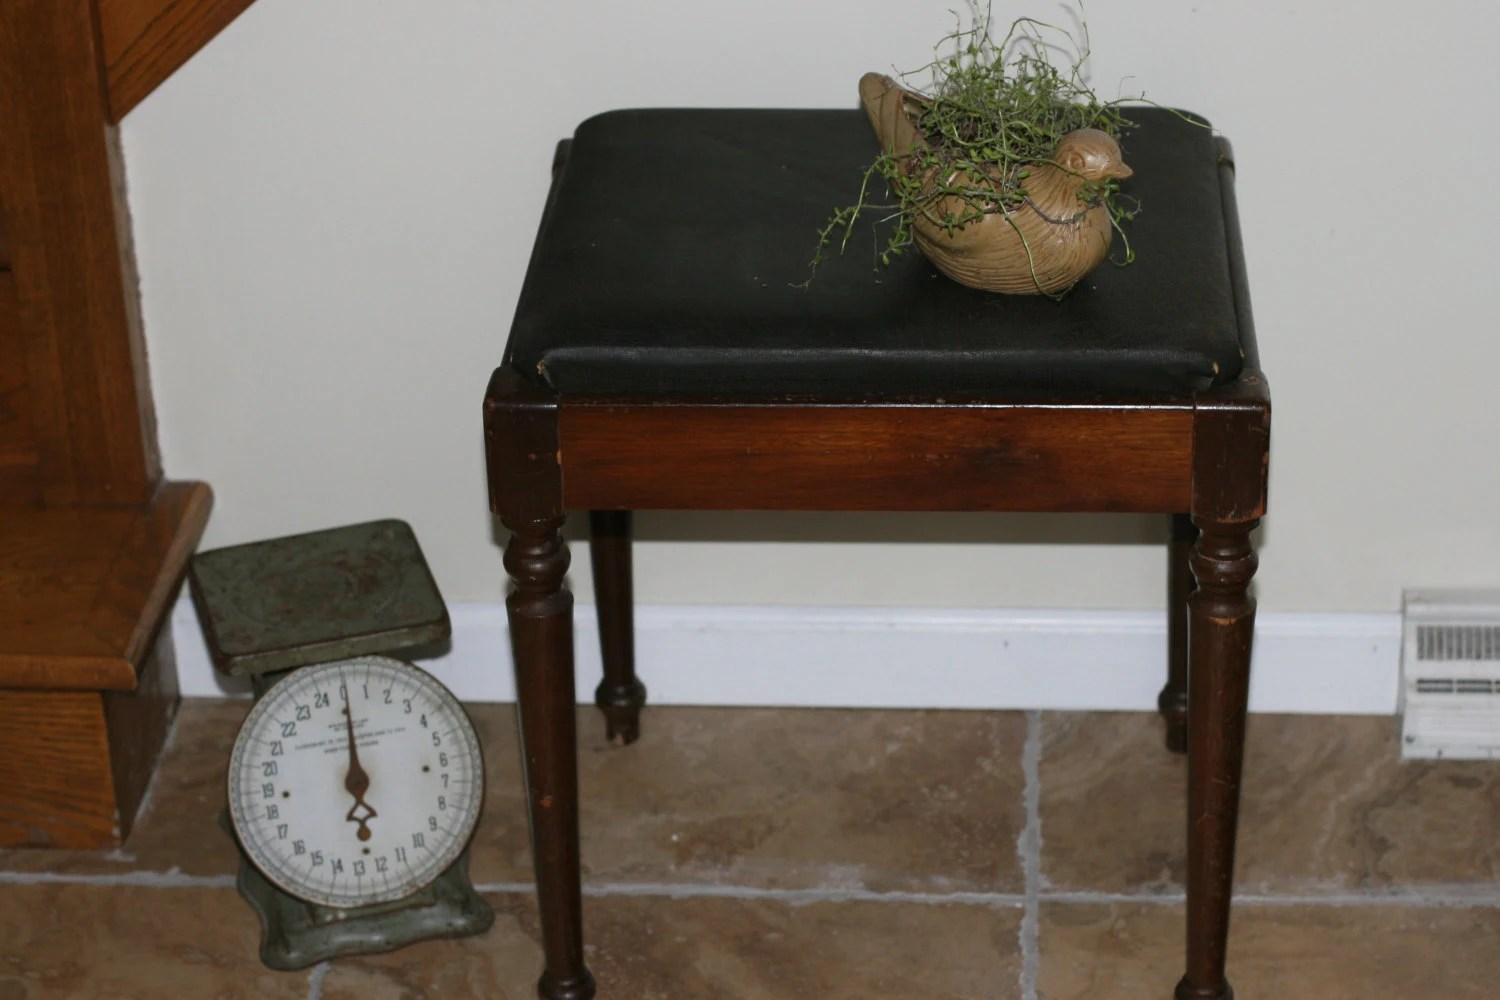 1950s Singer Sewing Stool Antique Stool Storage Bench